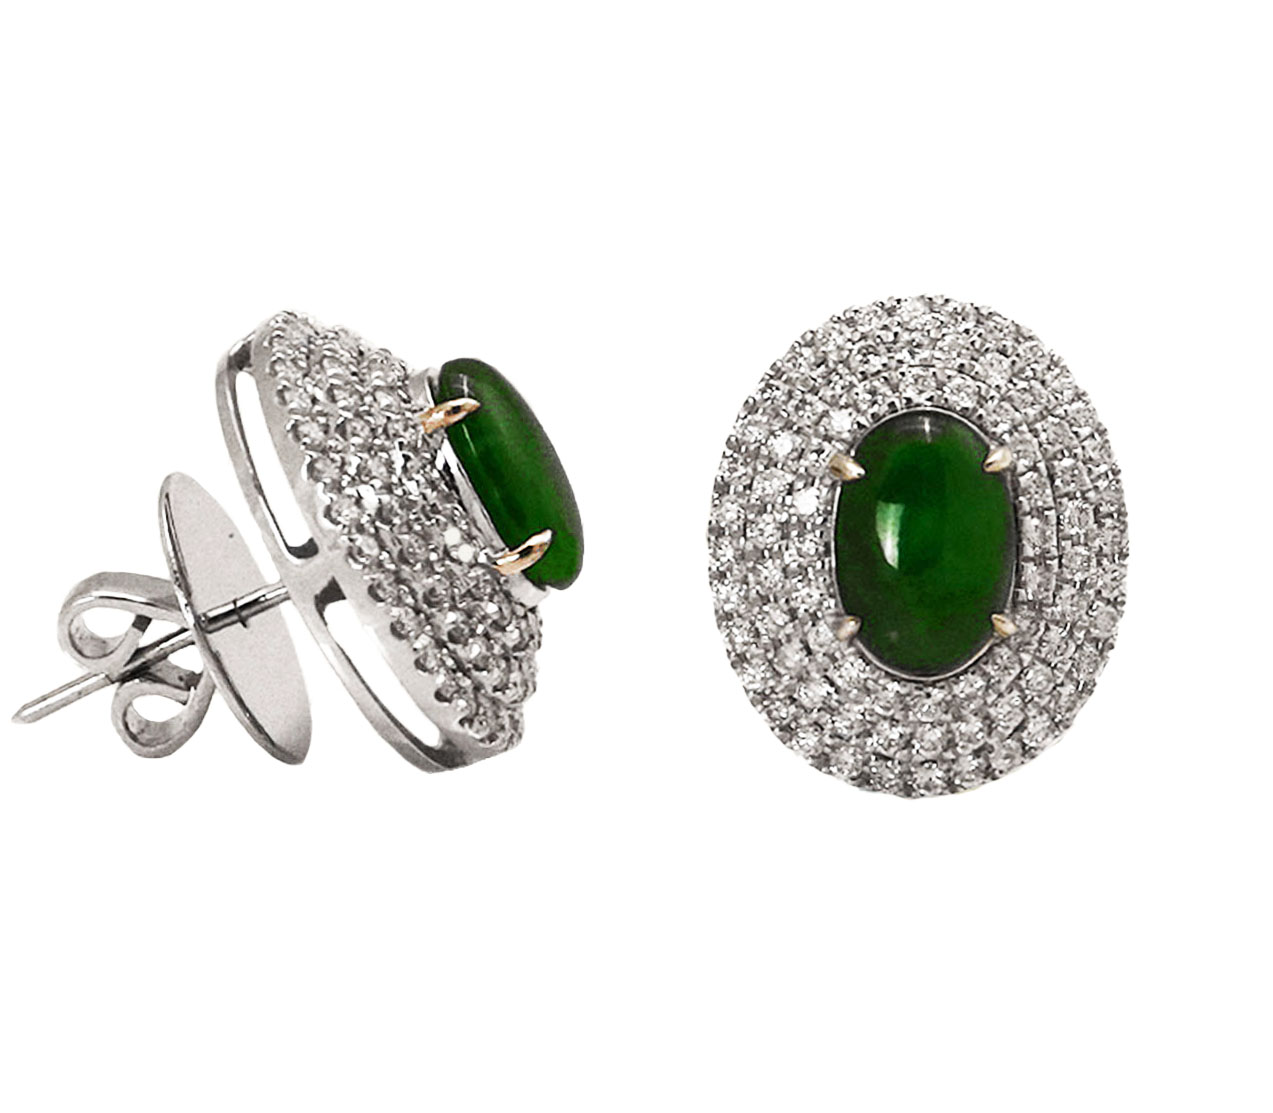 Cabochon Jade Diamond Earrings